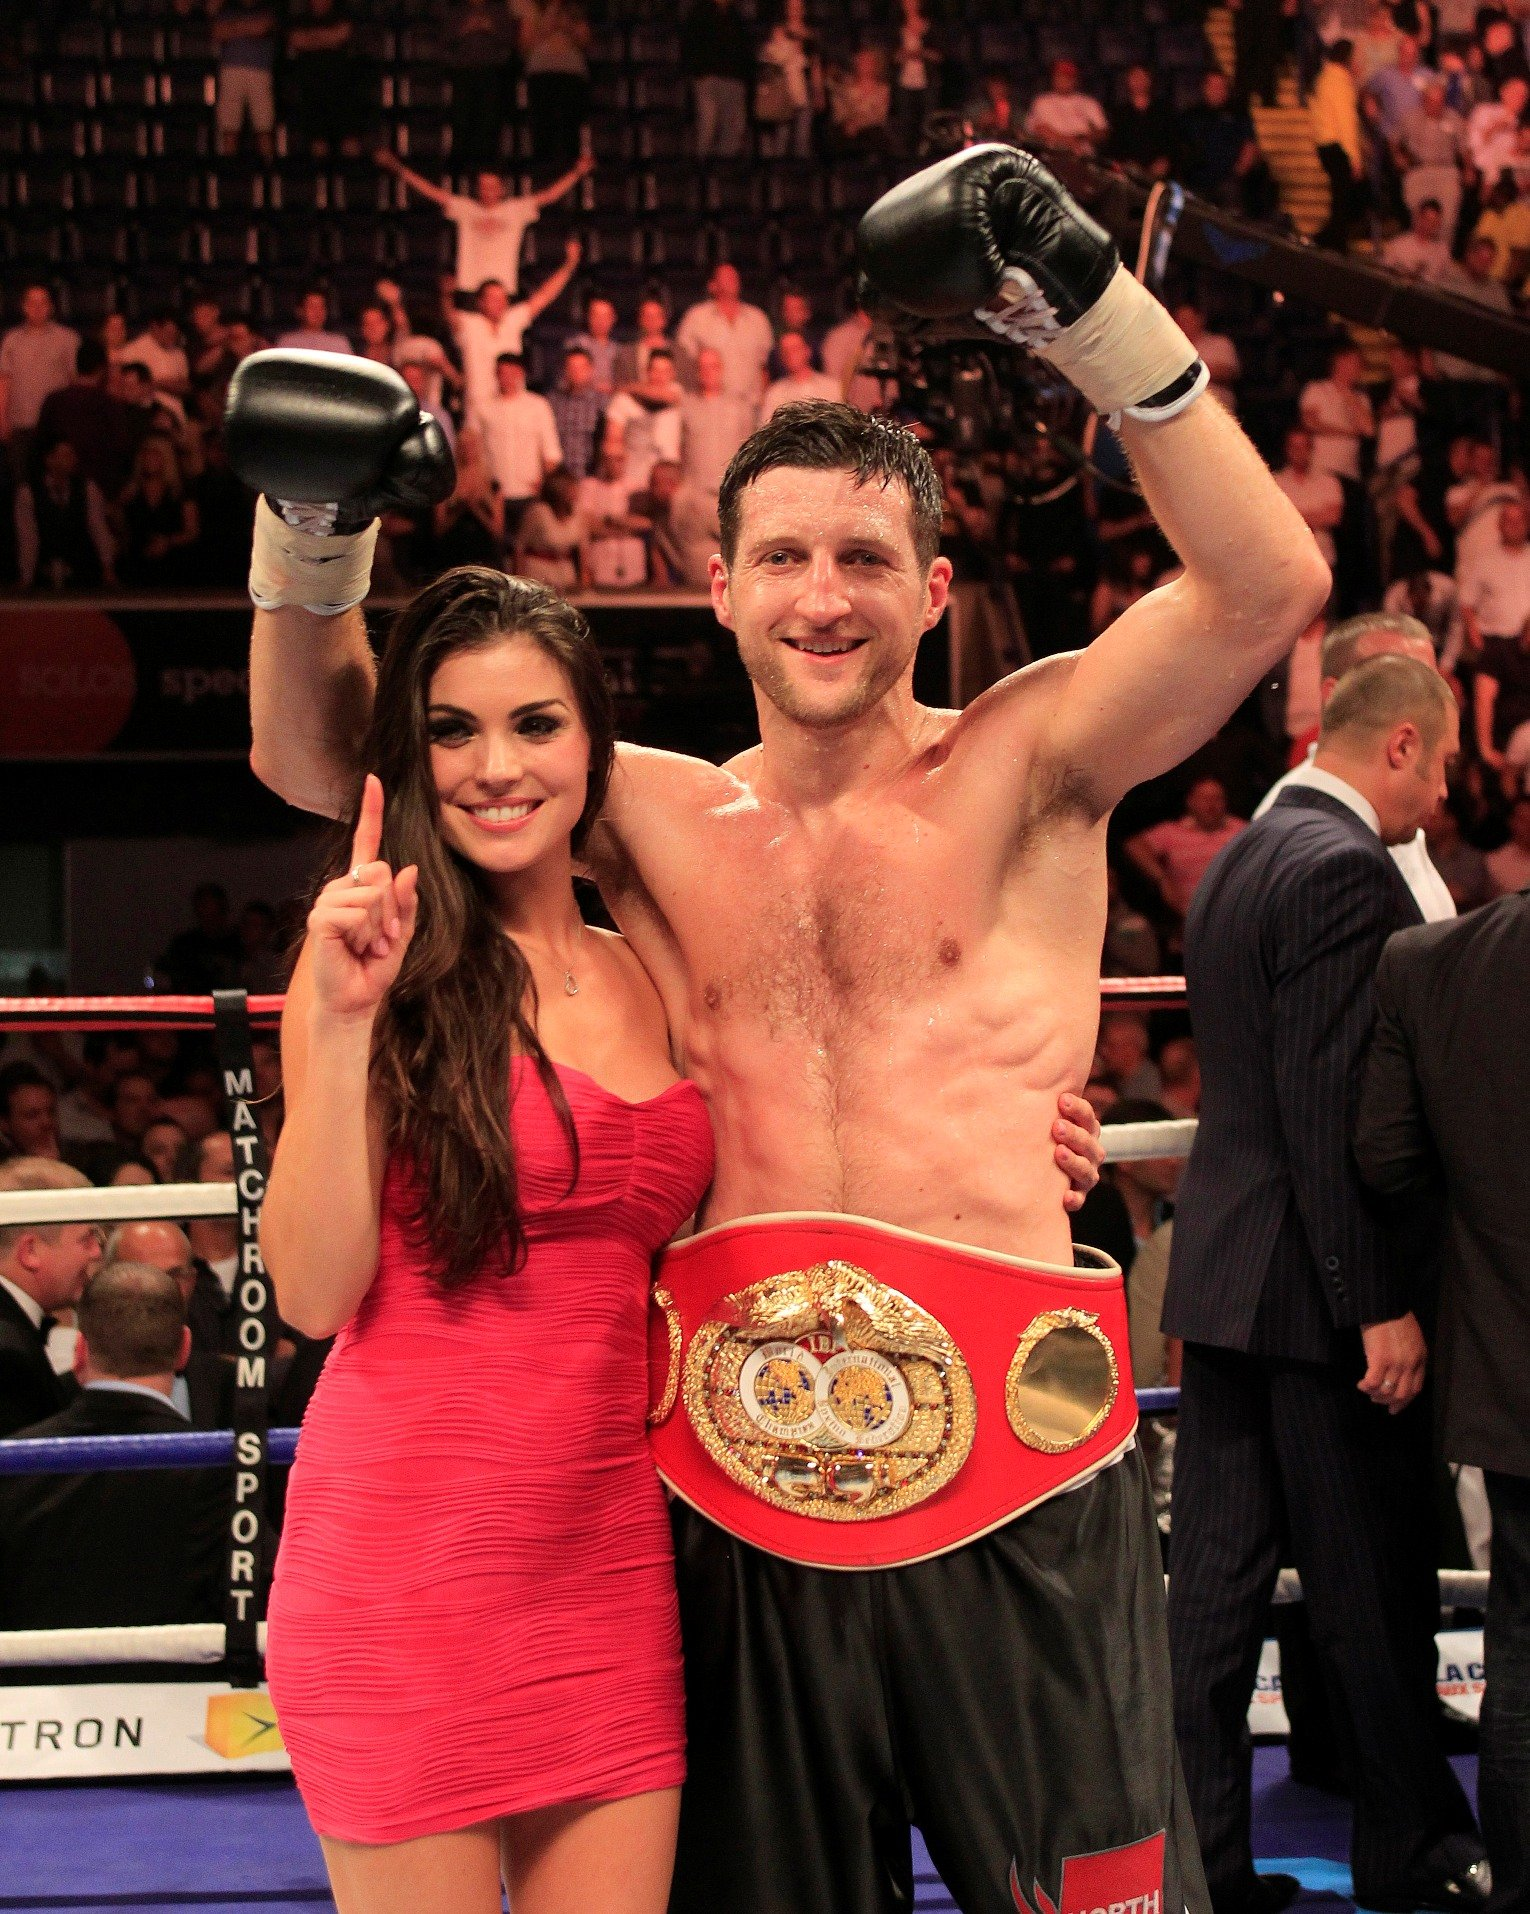 Klitschko vs. Fury, Tyson Fury, Wladimir Klitschko - Former super-middleweight world champion and 'Sky Boxing' analyst, Carl Froch, believes Tyson Fury's best chance of beating Wladimir Klitschko tonight in Dusseldorf is to get close and really try to 'put it on' the dominant champion.